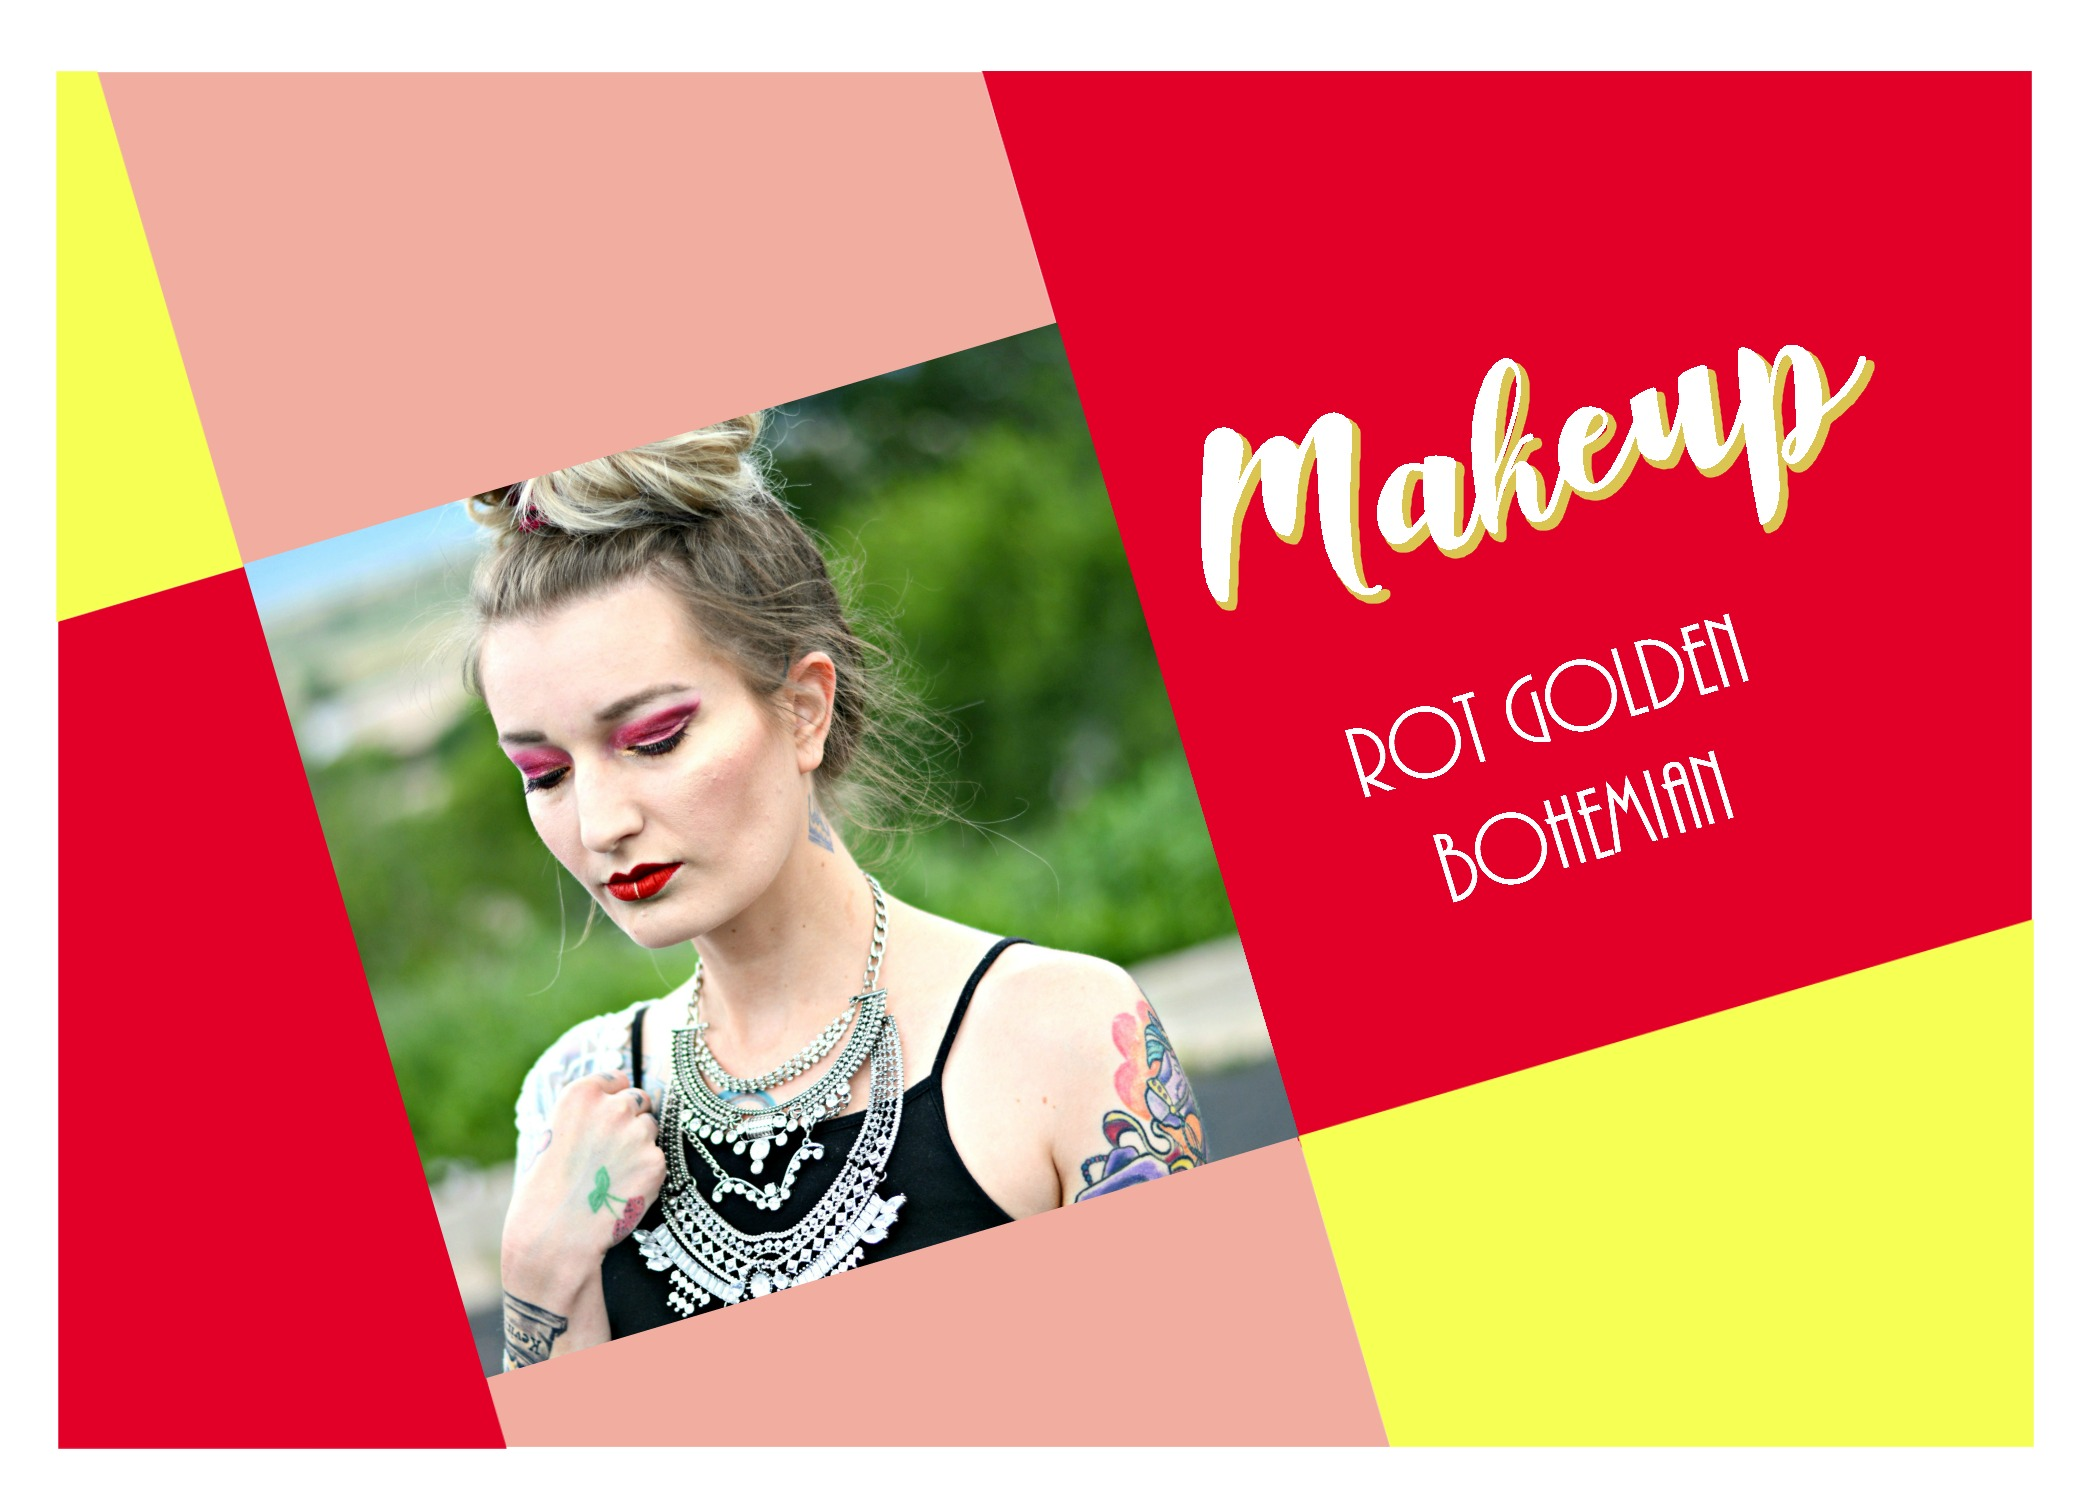 Makeup #4 – Rot-Golden Bohemian